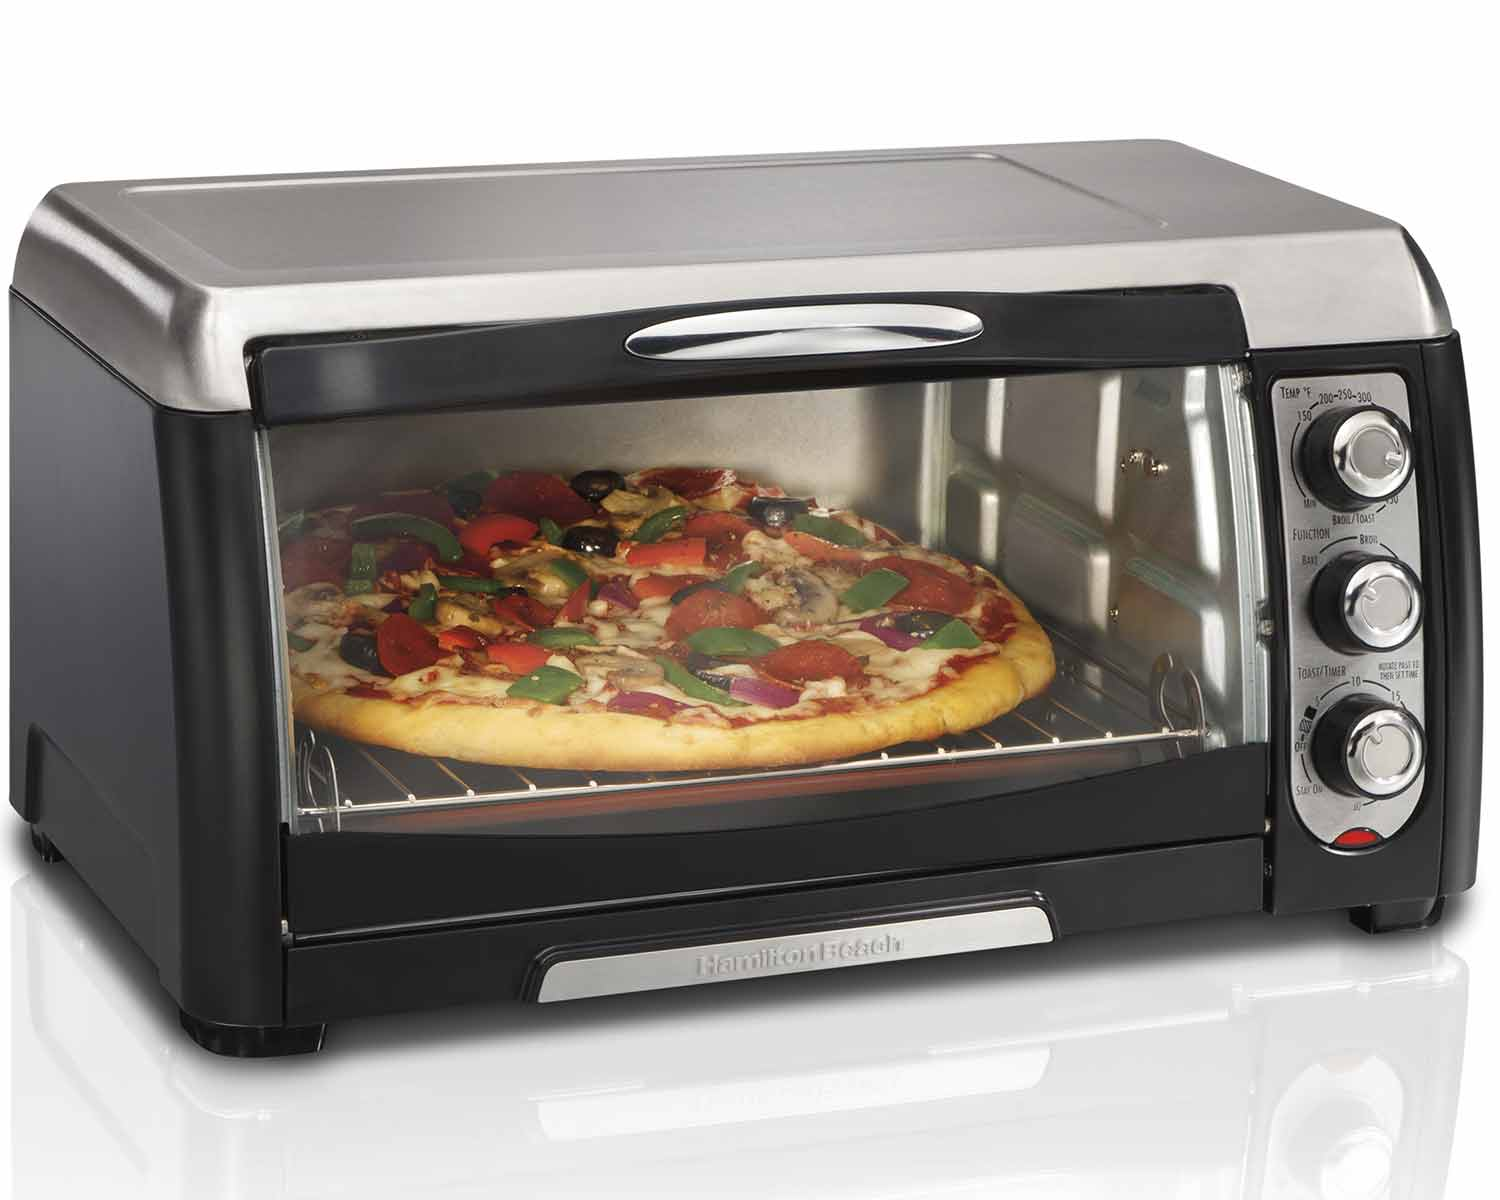 Toaster Oven (31330)